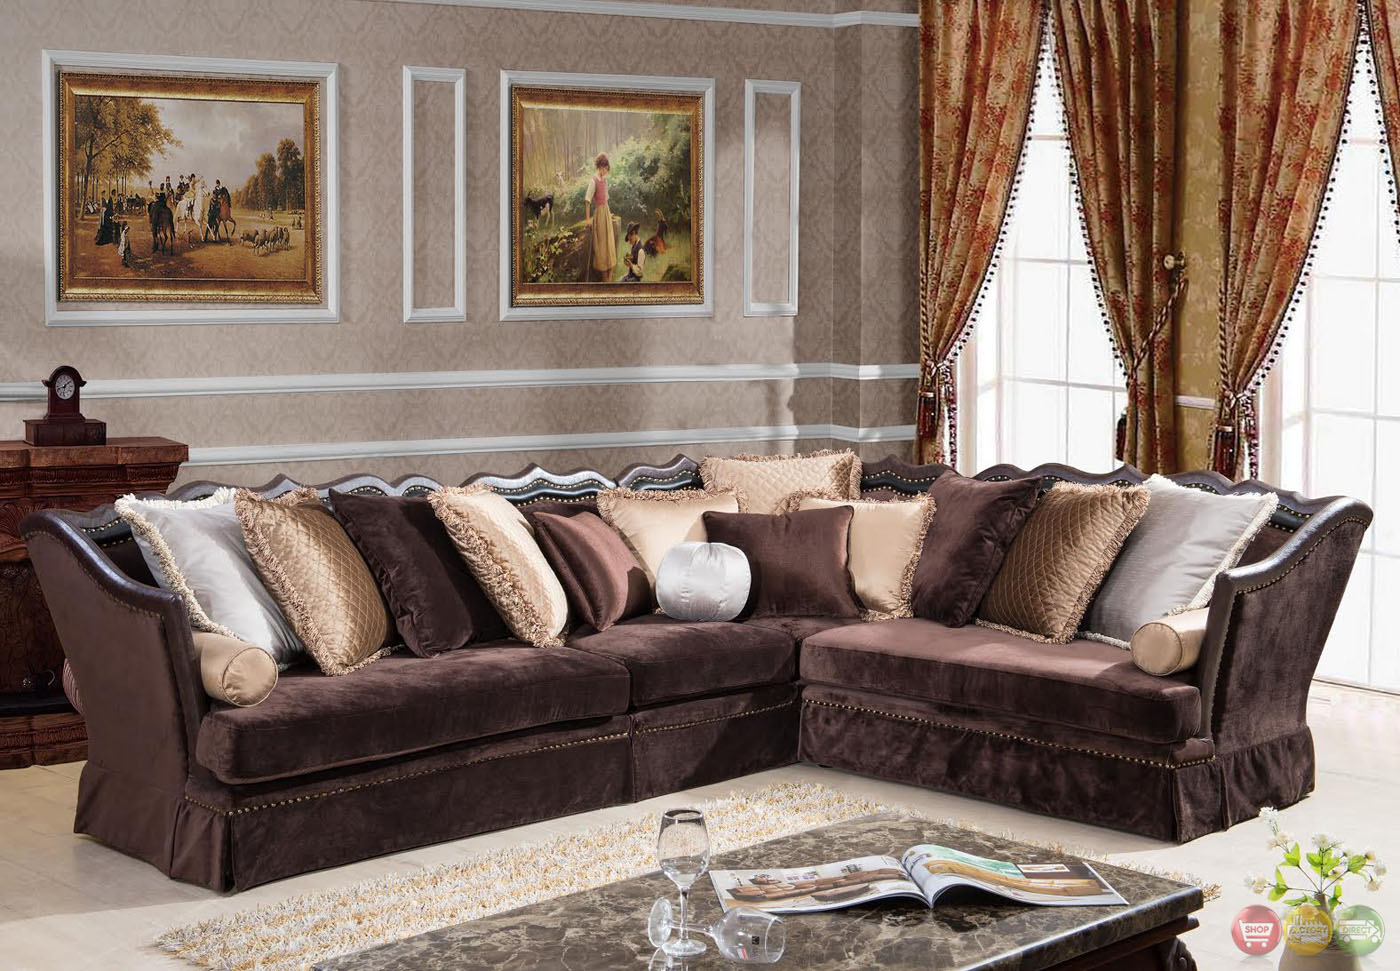 Godiva formal antique style traditional living room for Traditional furniture